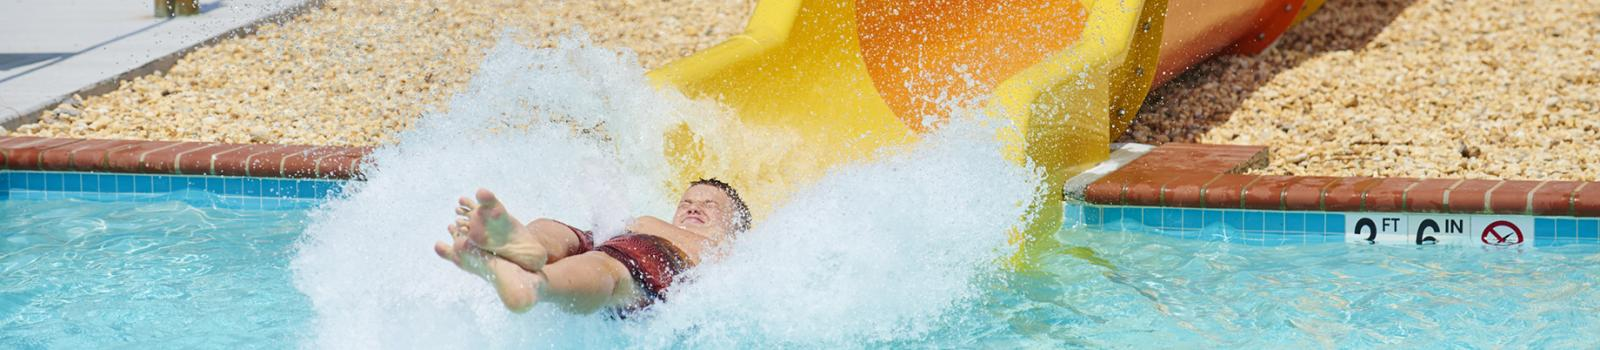 Maui Jack's Waterpark Slides